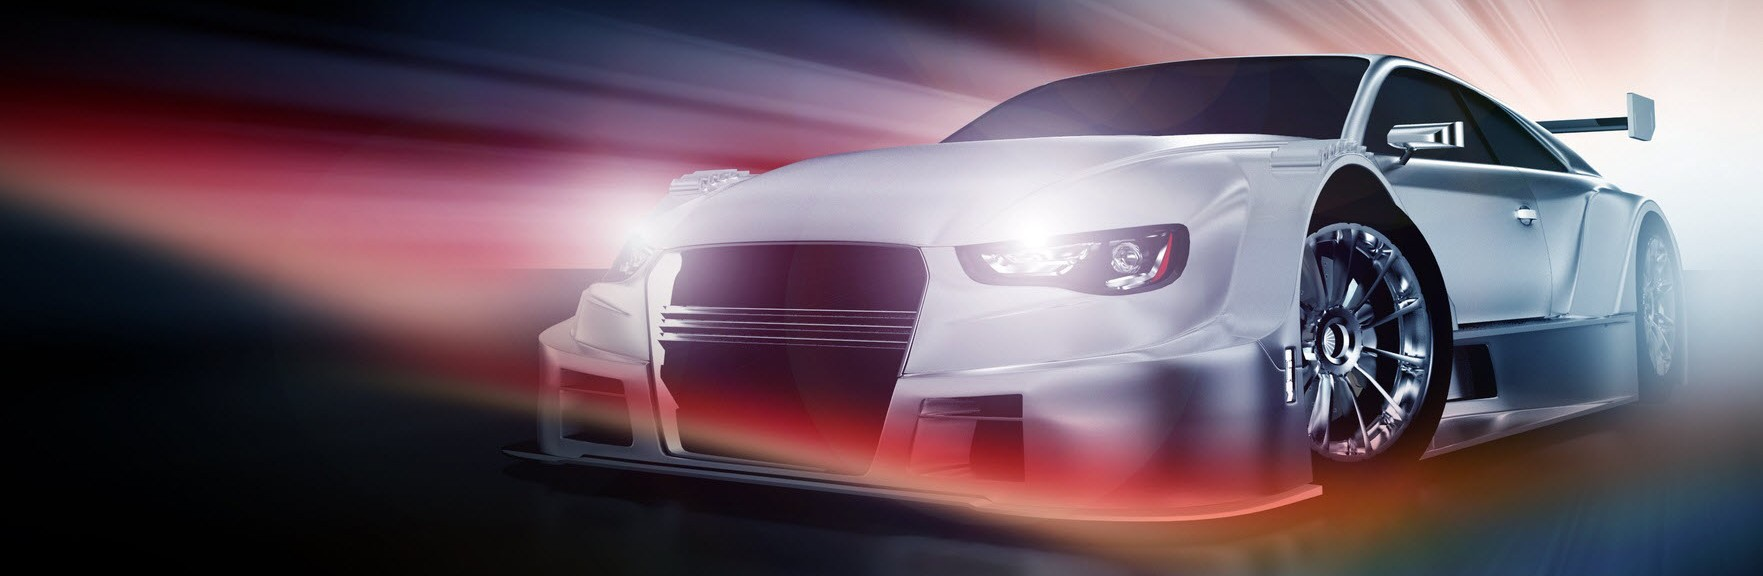 Fotolia_48147908_M-Performance-car